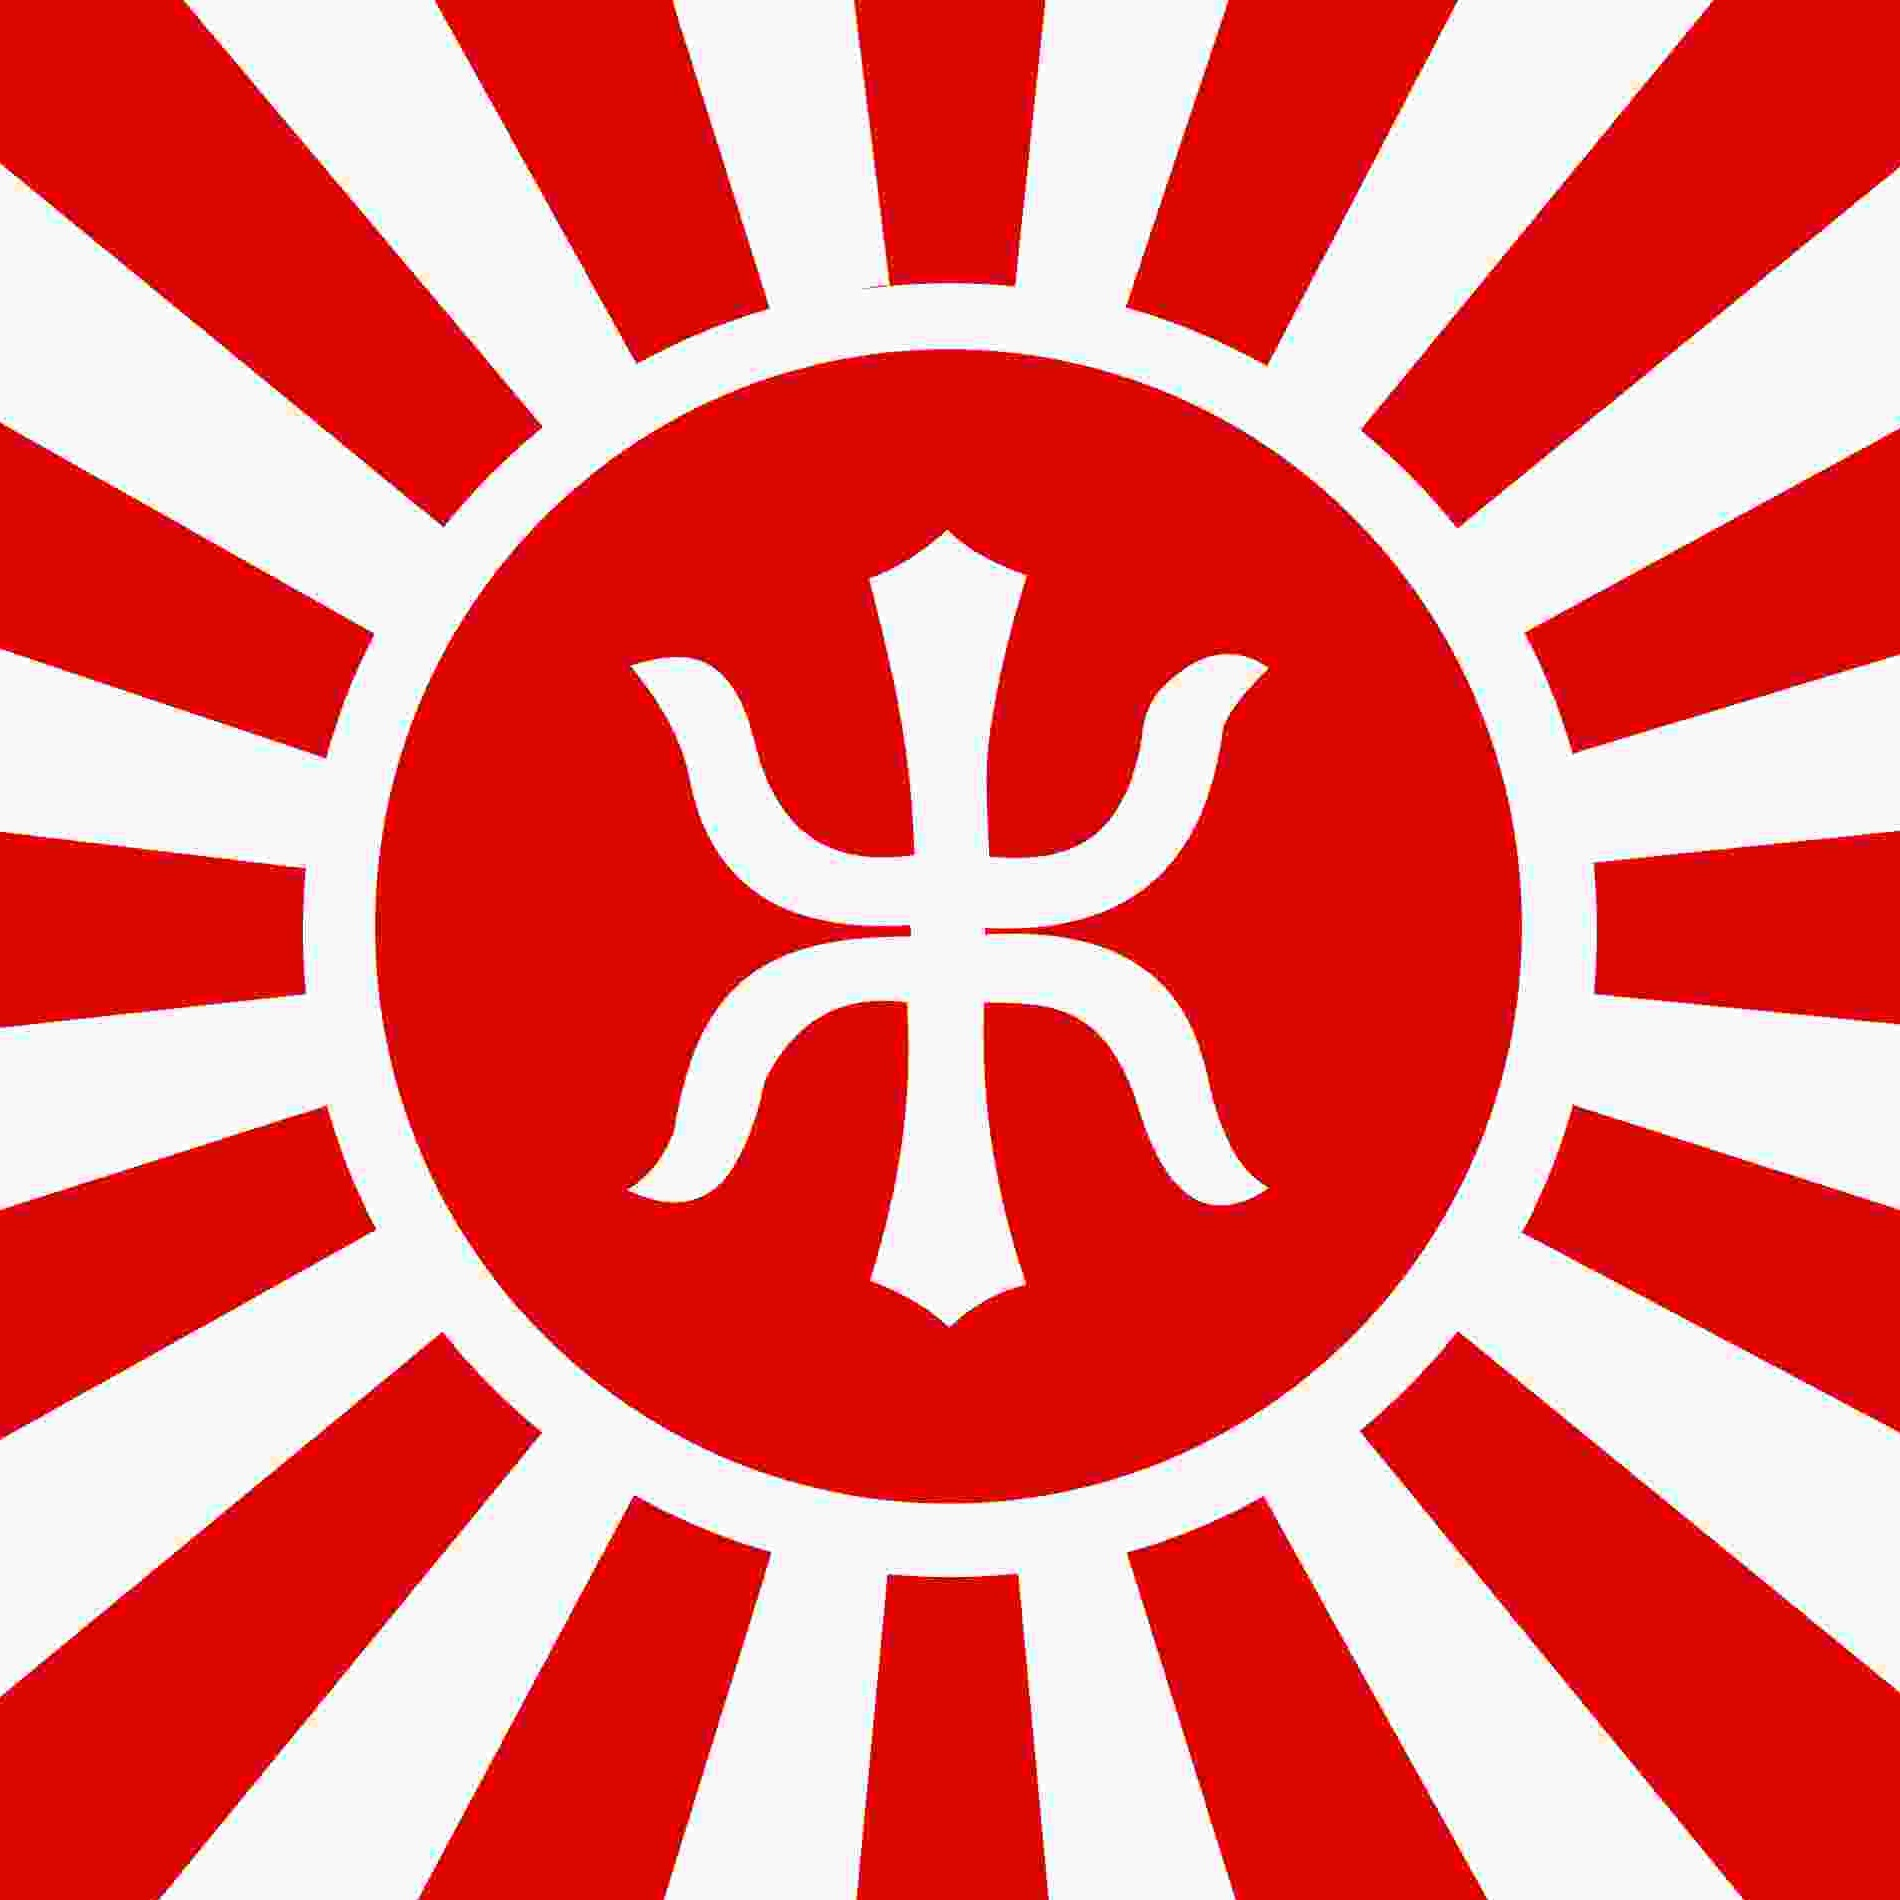 Image The Empire Of The Rising Sun Bannerg Villains Wiki